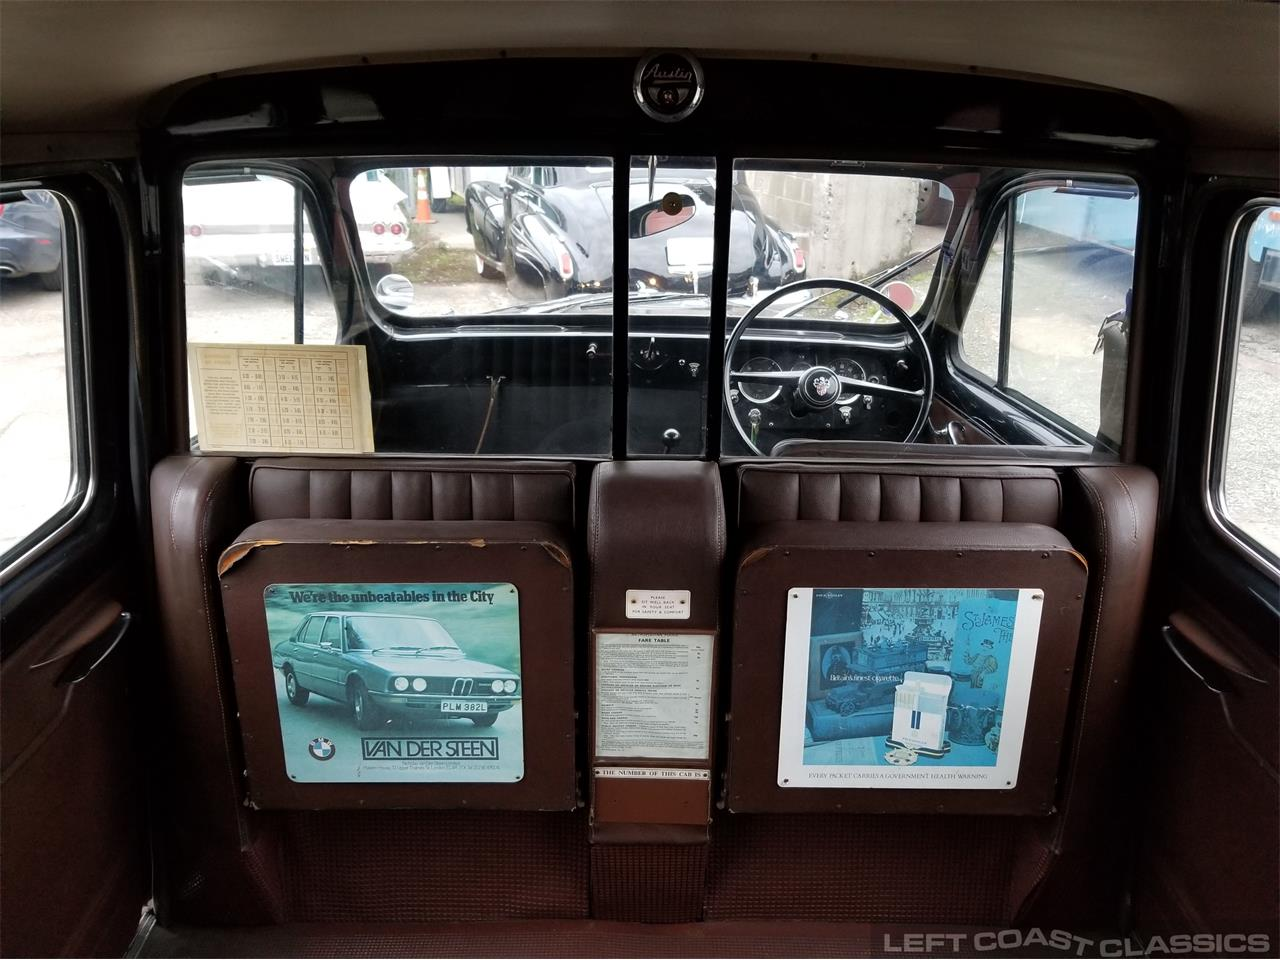 Large Picture of Classic 1967 FX4 Taxi Cab located in California Offered by Left Coast Classics - PKBX